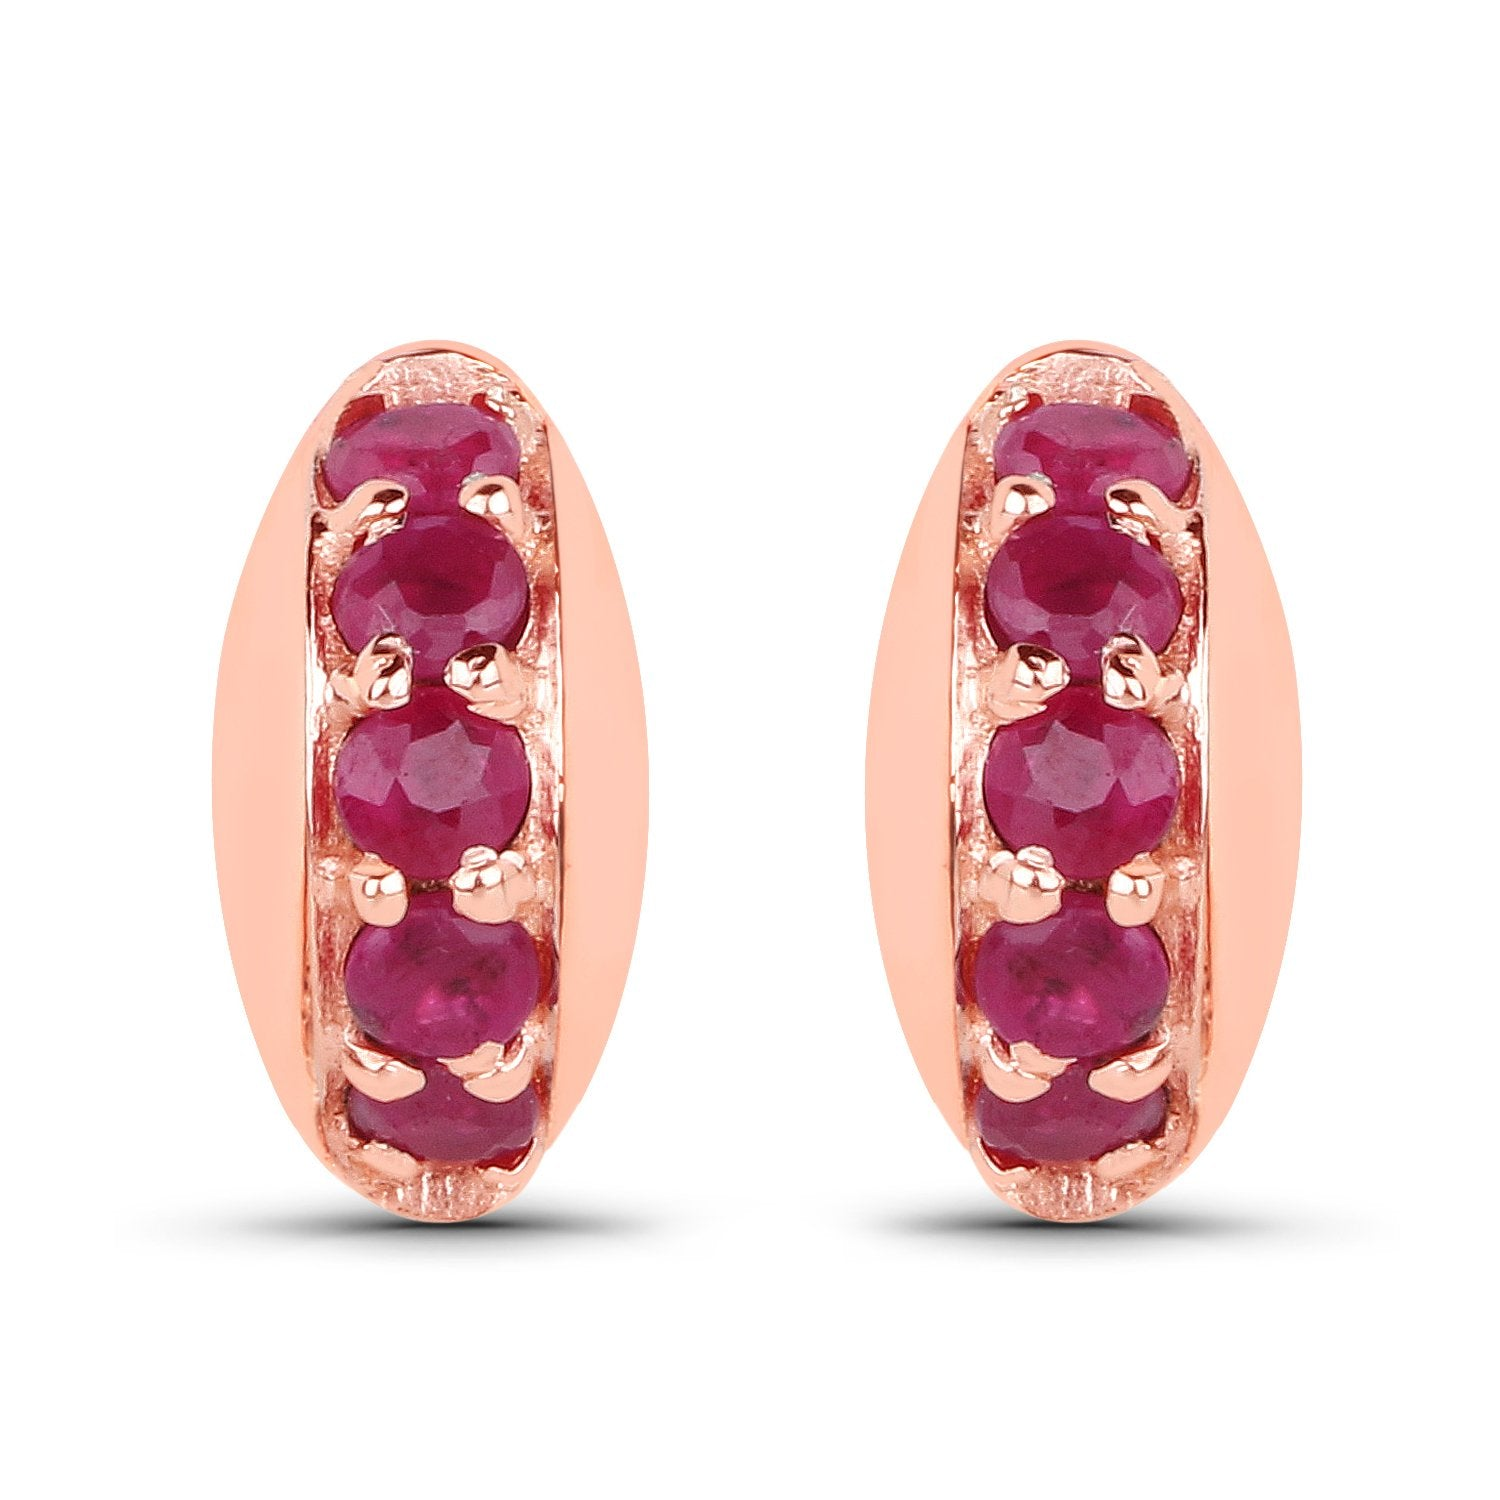 LoveHuang 0.45 Carats Genuine Ruby Stud Earrings Solid .925 Sterling Silver With 18KT Rose Gold Plating